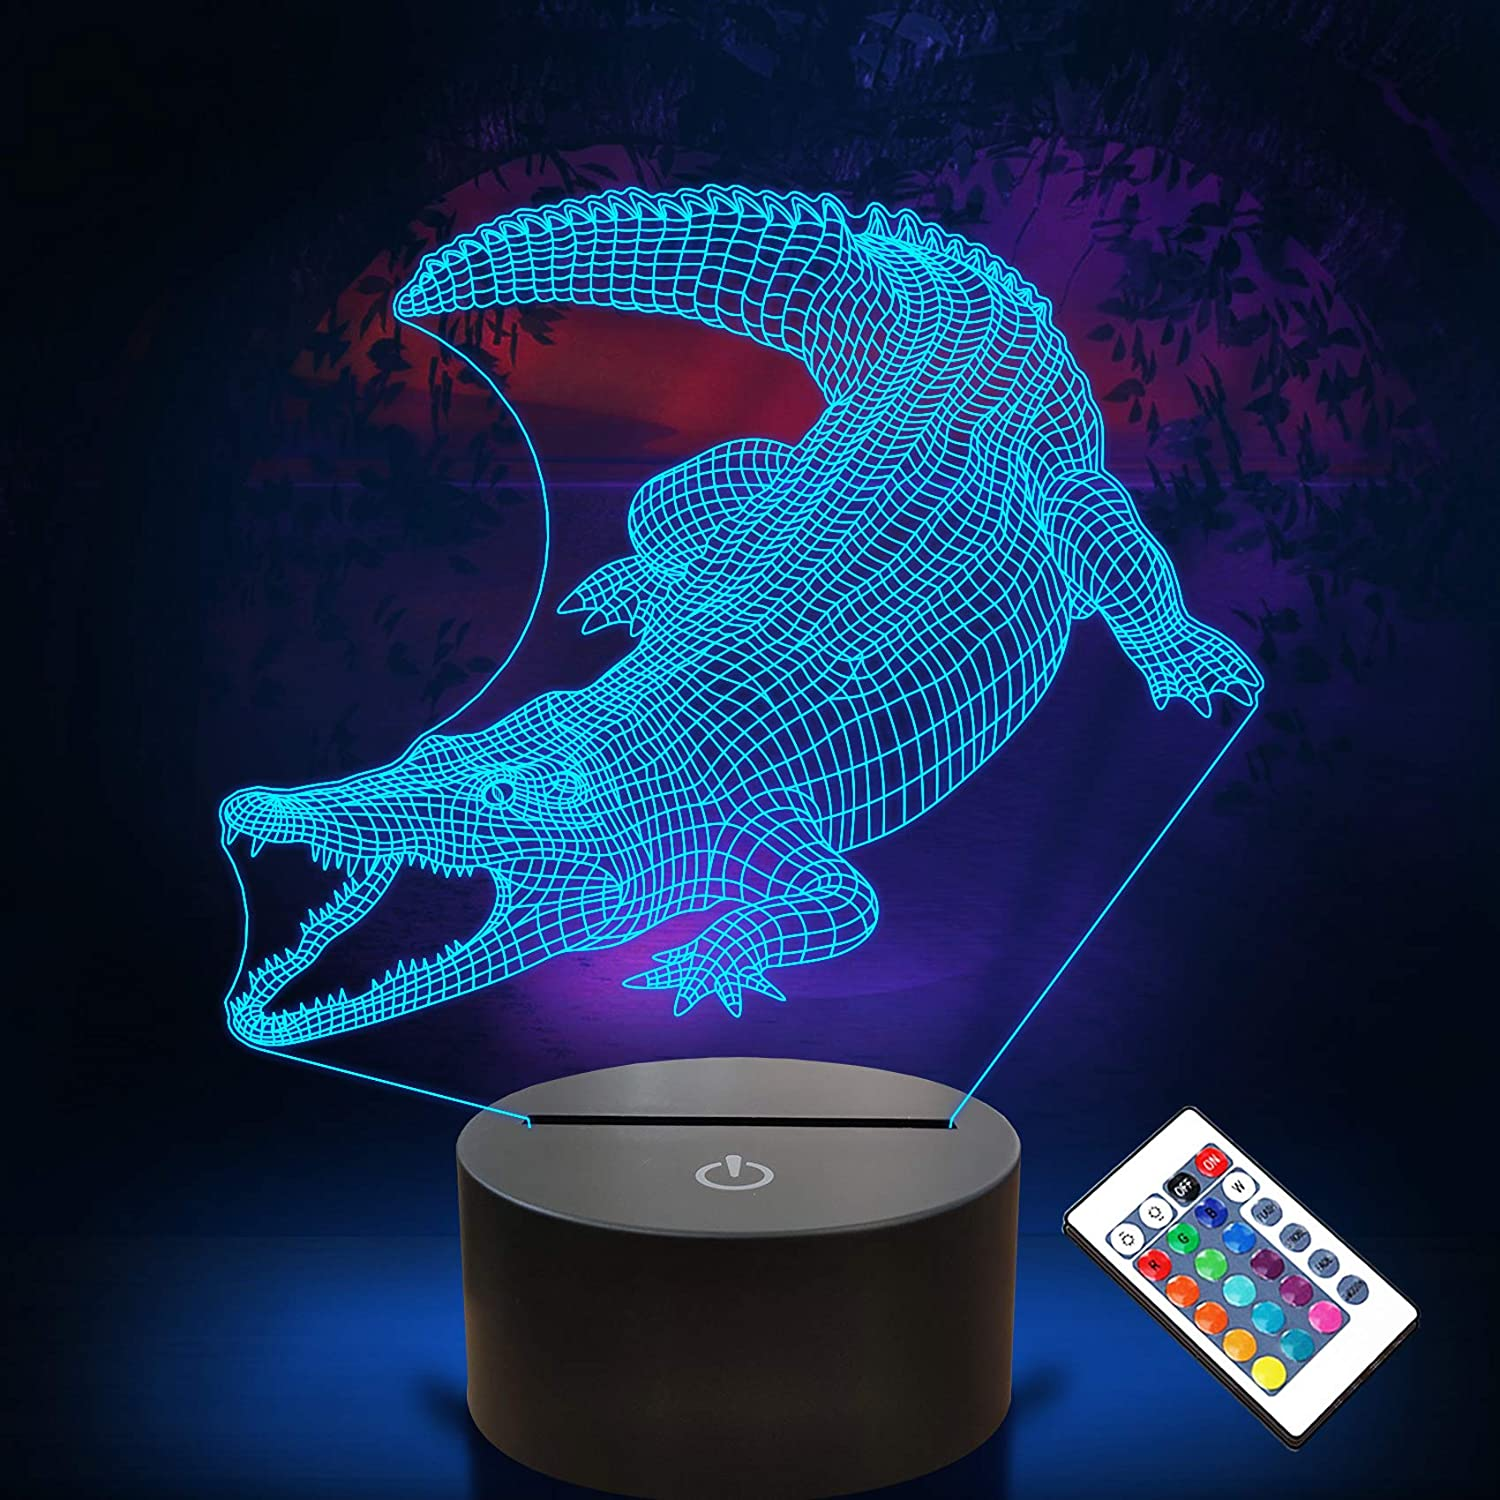 FULLOSUN Crocodile Gifts, 3D Alligator Night Light for Children with Remote Control, Timer, 16 Colors Changeable Christmas Birthday Gifts Suitable for Boys Aged Above 3, 4, 5, 6 +